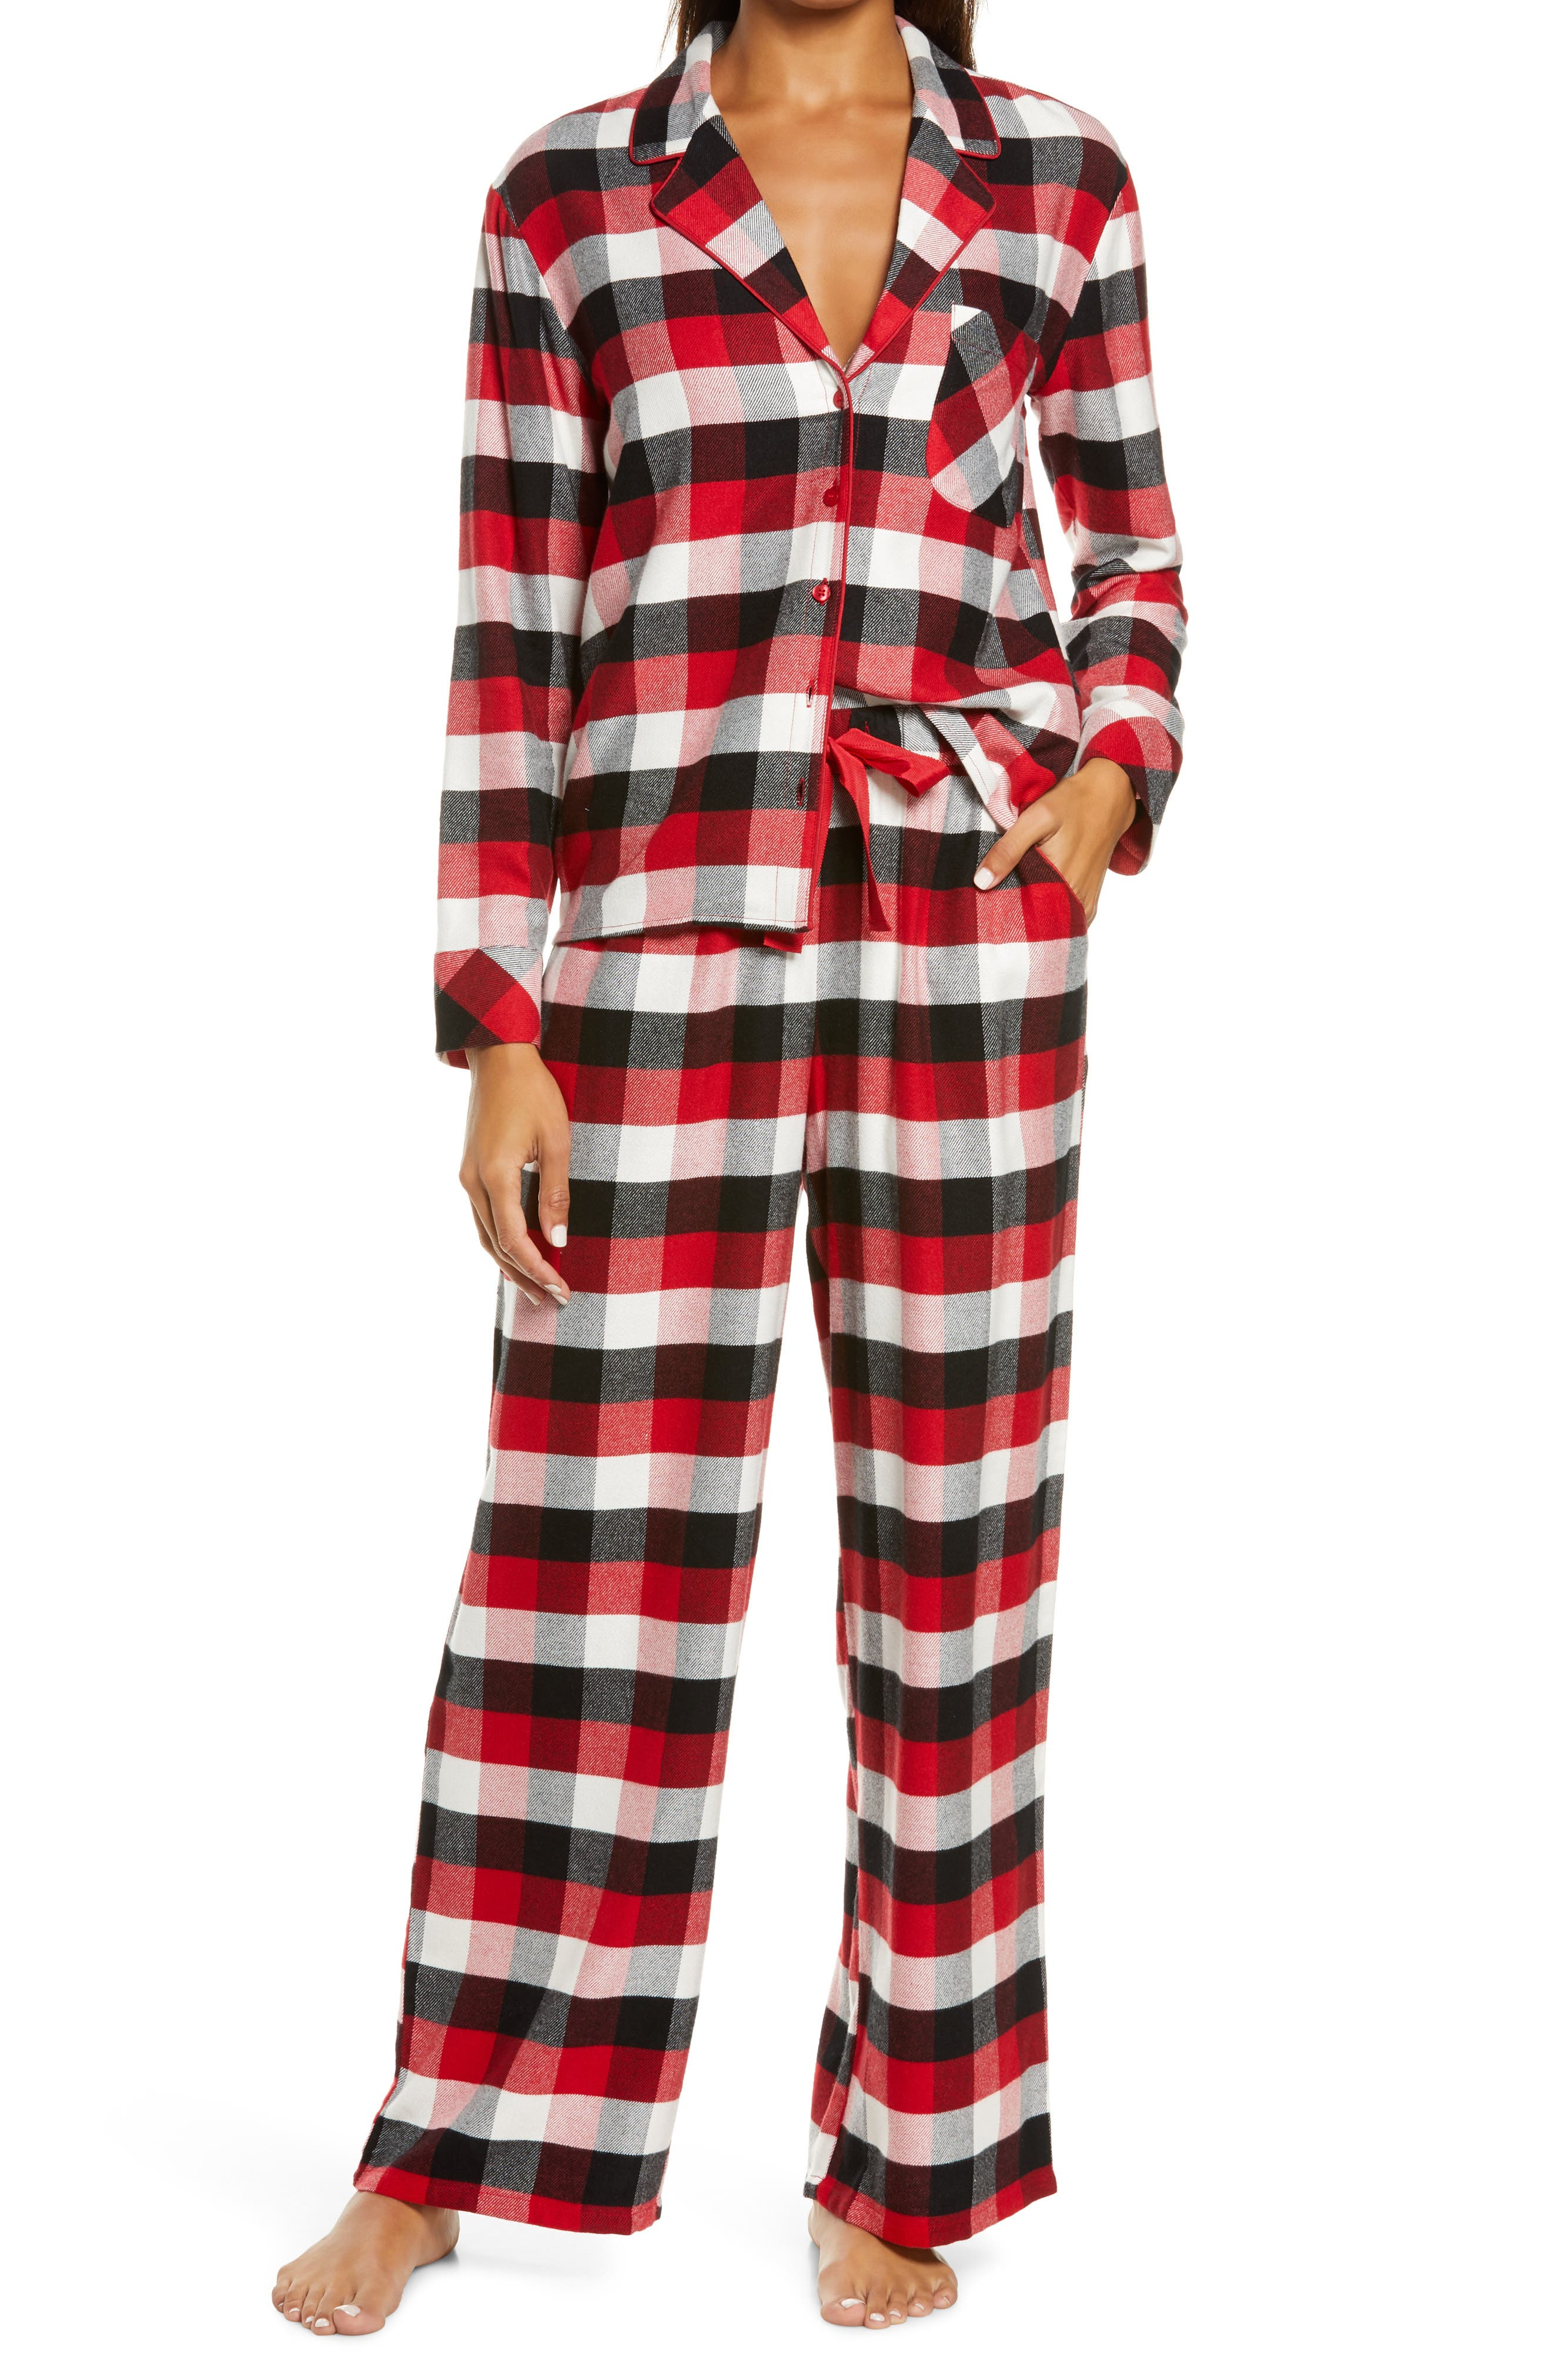 Image of Nordstrom Flannel Pajamas